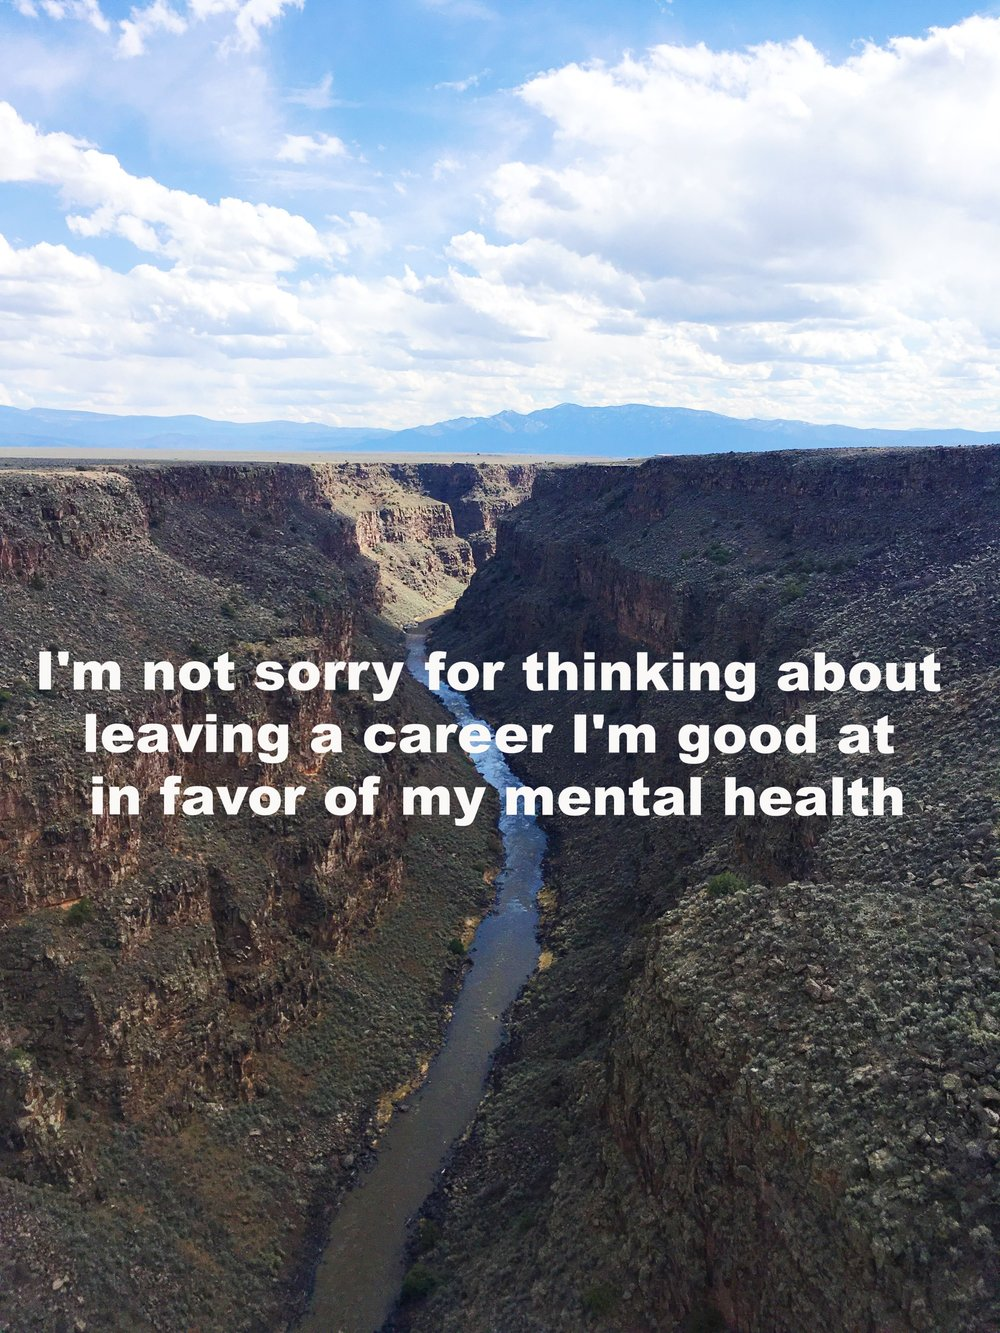 """Anonymous April 15 2017 Image of a canyon with a stream running through it. Above the ground are blue mountains and a sky with clouds.""""I'm not sorry for thinking about leaving a career I'm good at in favor of my mental health"""" is overlaid. Photo by Nino Cipri"""